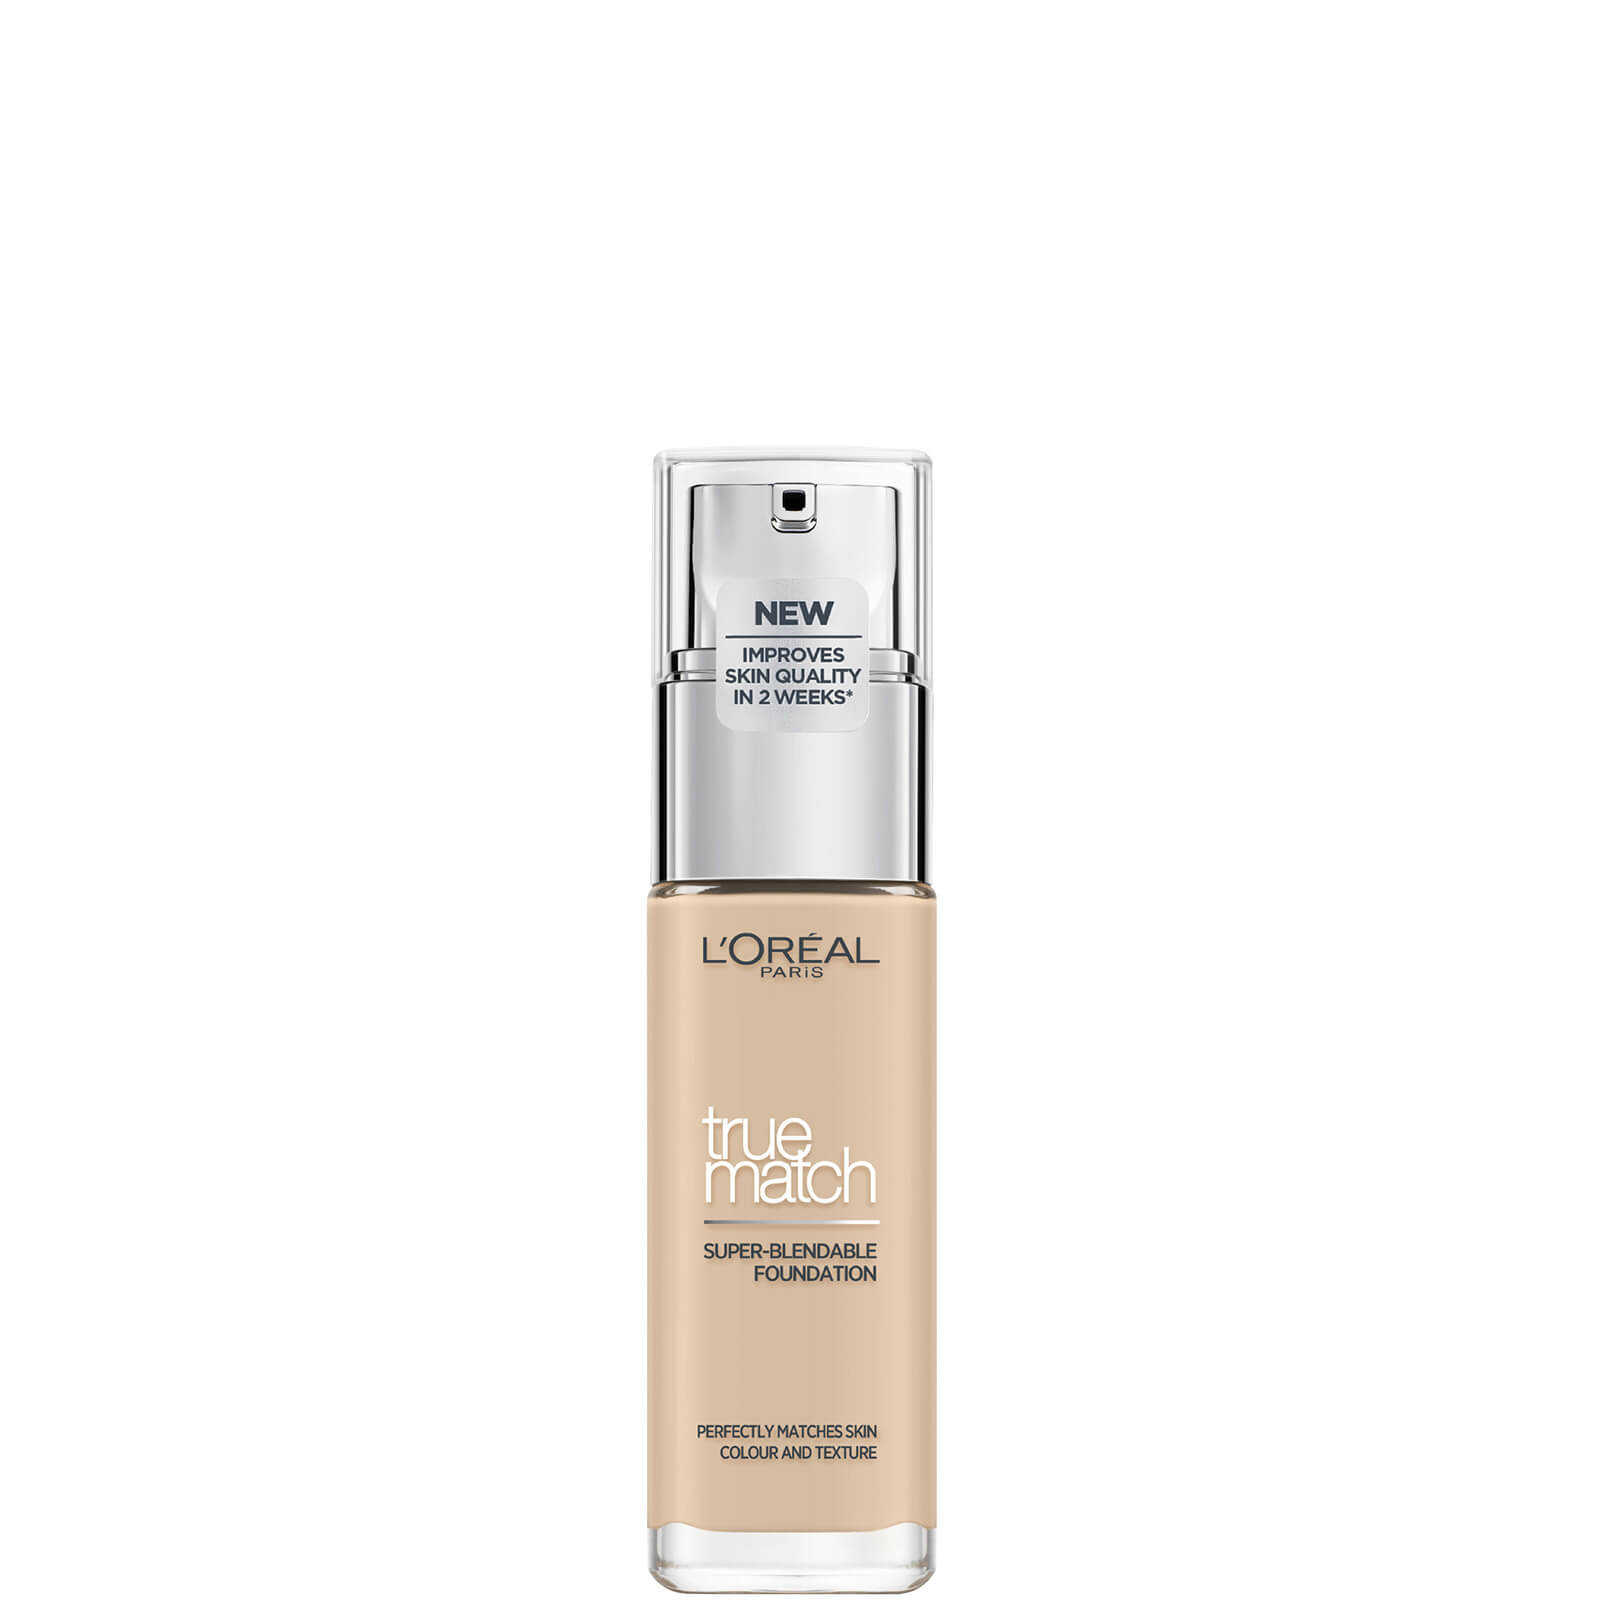 L'Oréal Paris True Match Liquid Foundation with SPF and Hyaluronic Acid 30ml (Various Shades) - Ivory